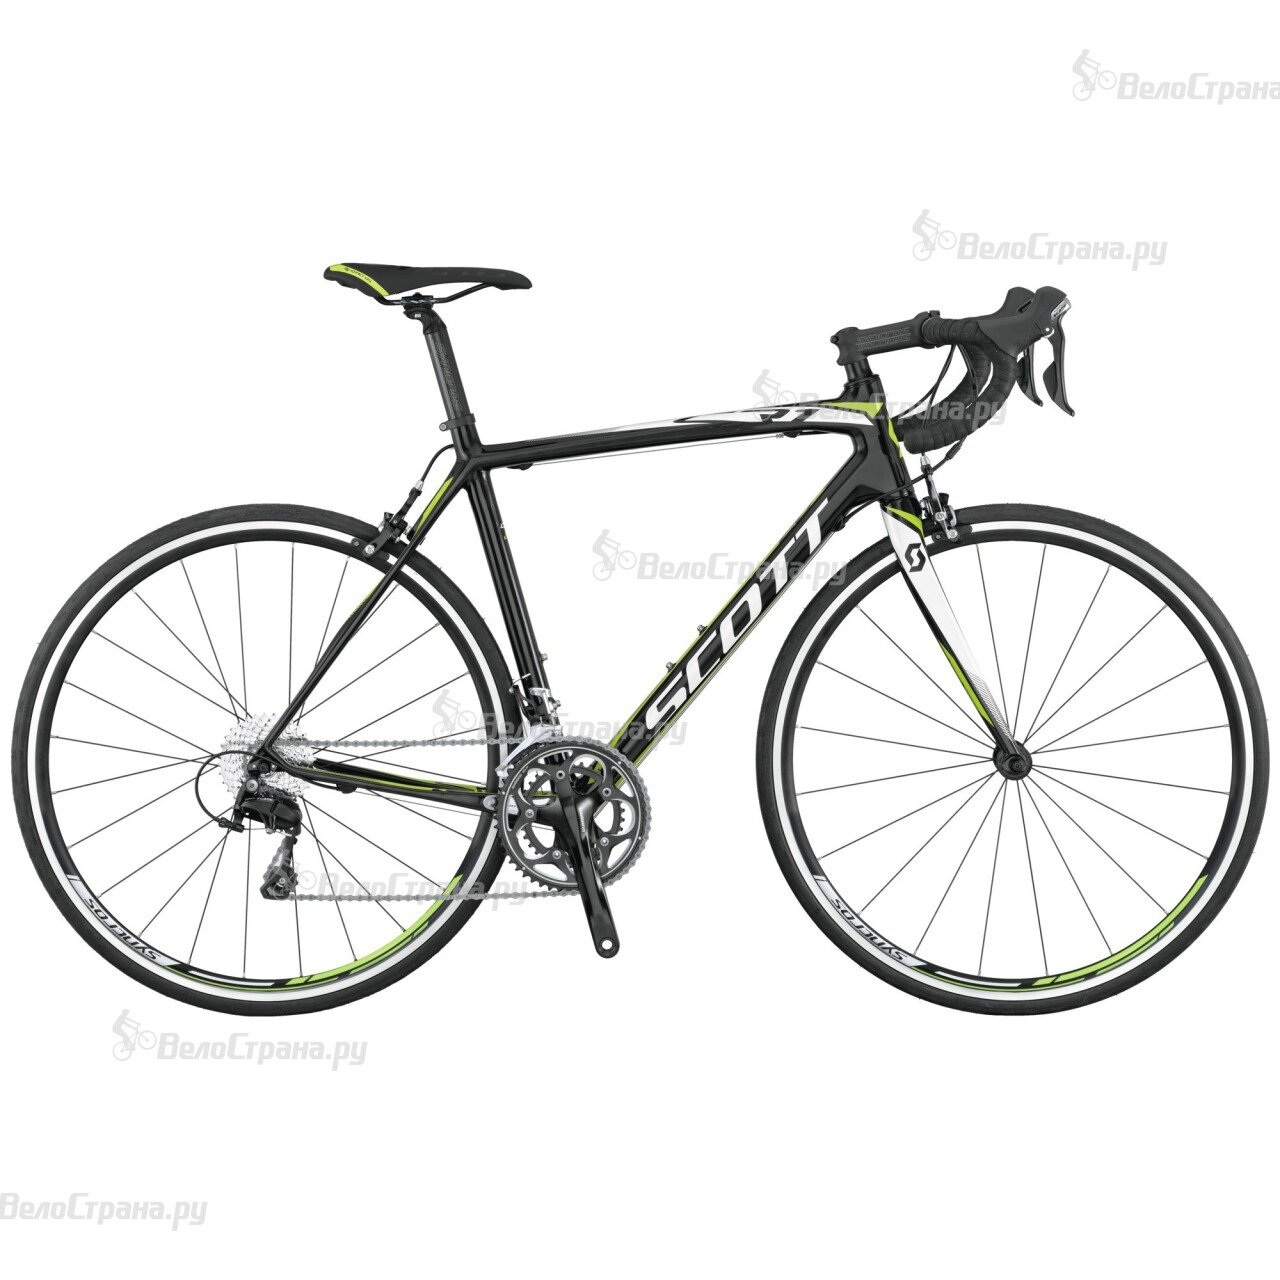 Велосипед Scott CR1 20 30 speed (2015) велосипед scott cr1 20 2015